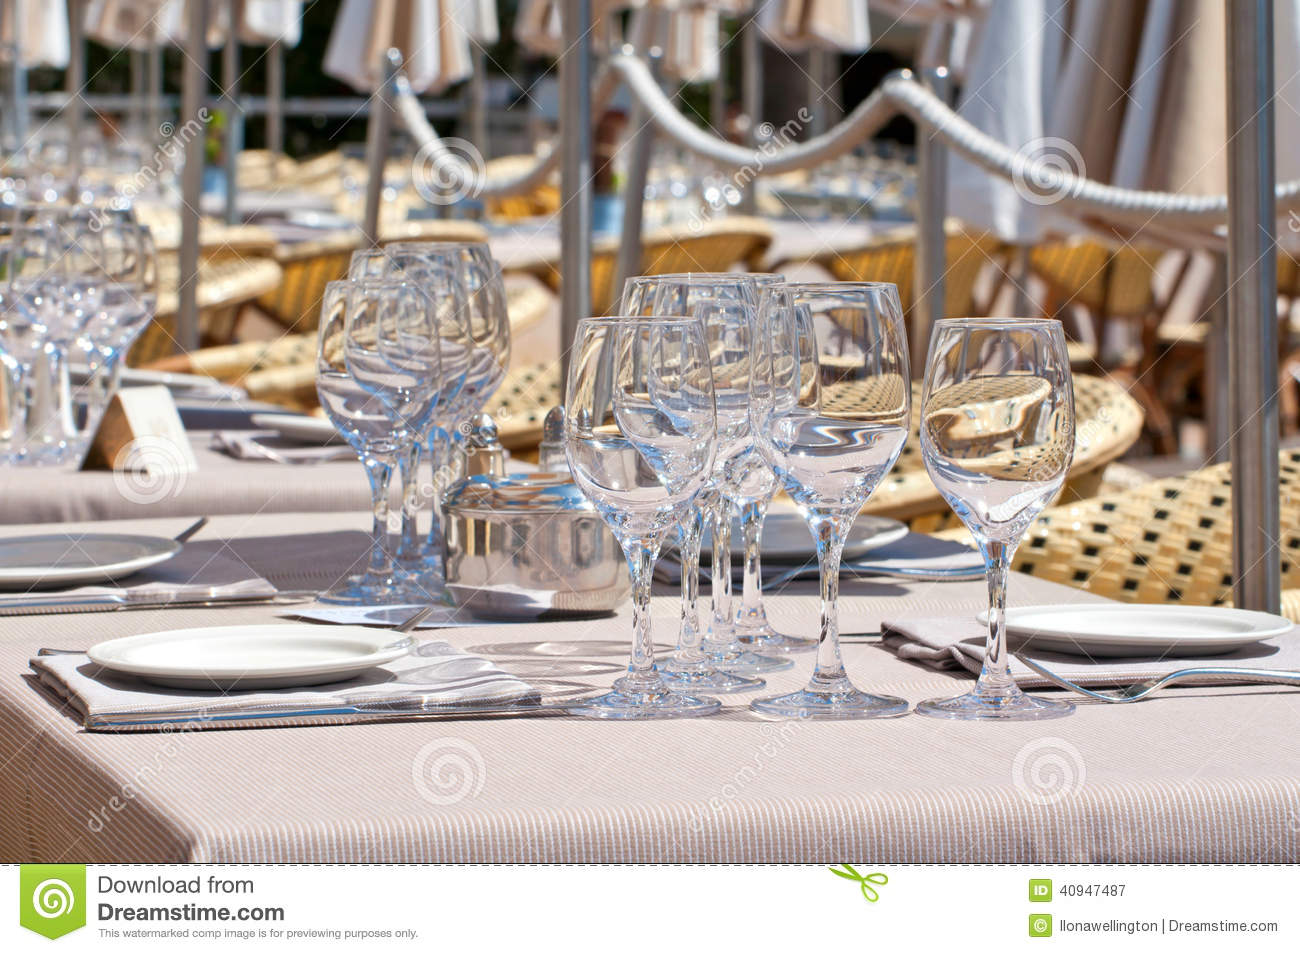 Fancy restaurant table setting - Beautiful Table Setting In An Outdoor Restaurant Royalty Free Stock Photography